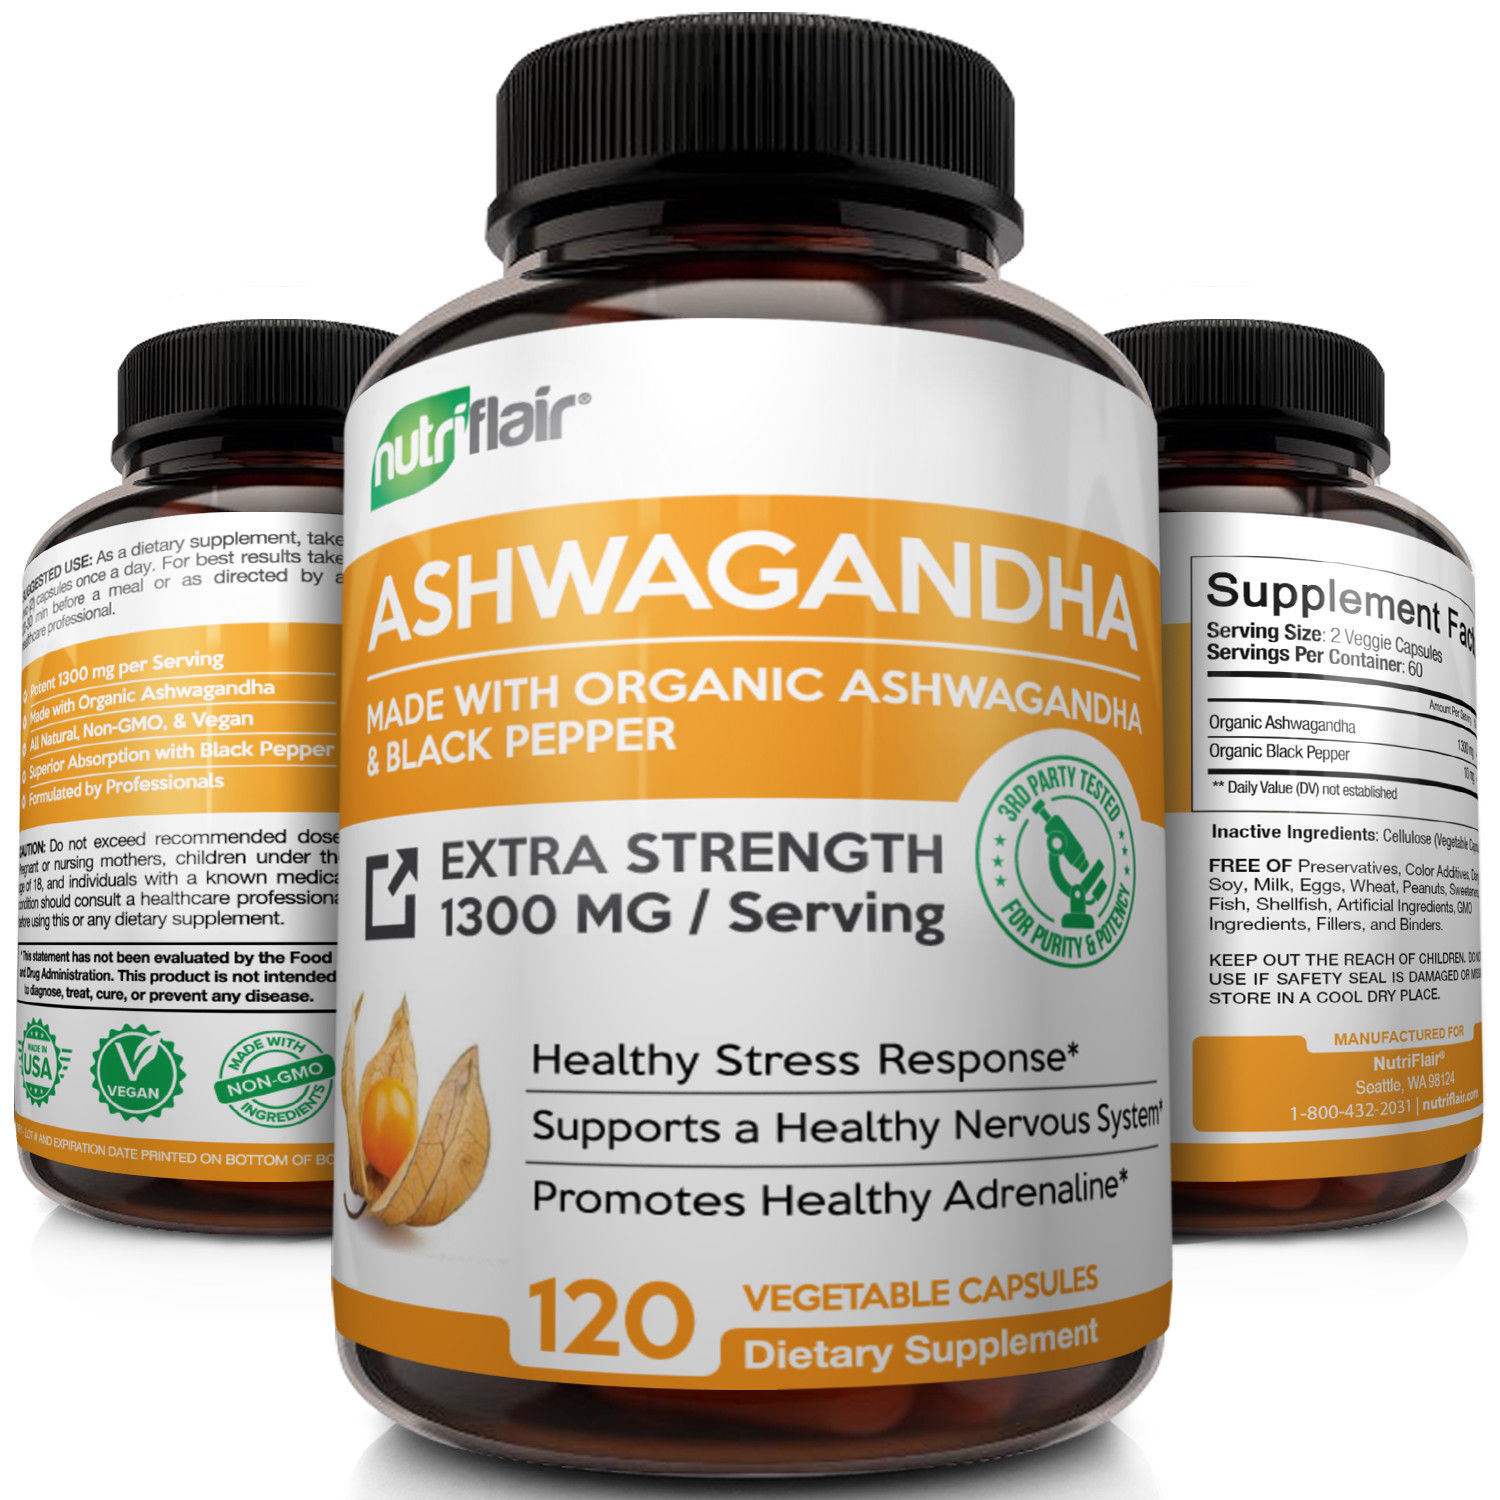 NutriFlair Organic Ashwagandha Root Powder with Black Pepper Extract 1300mg - Stress Relief, Anxiety & Mood Support, 120 Capsules